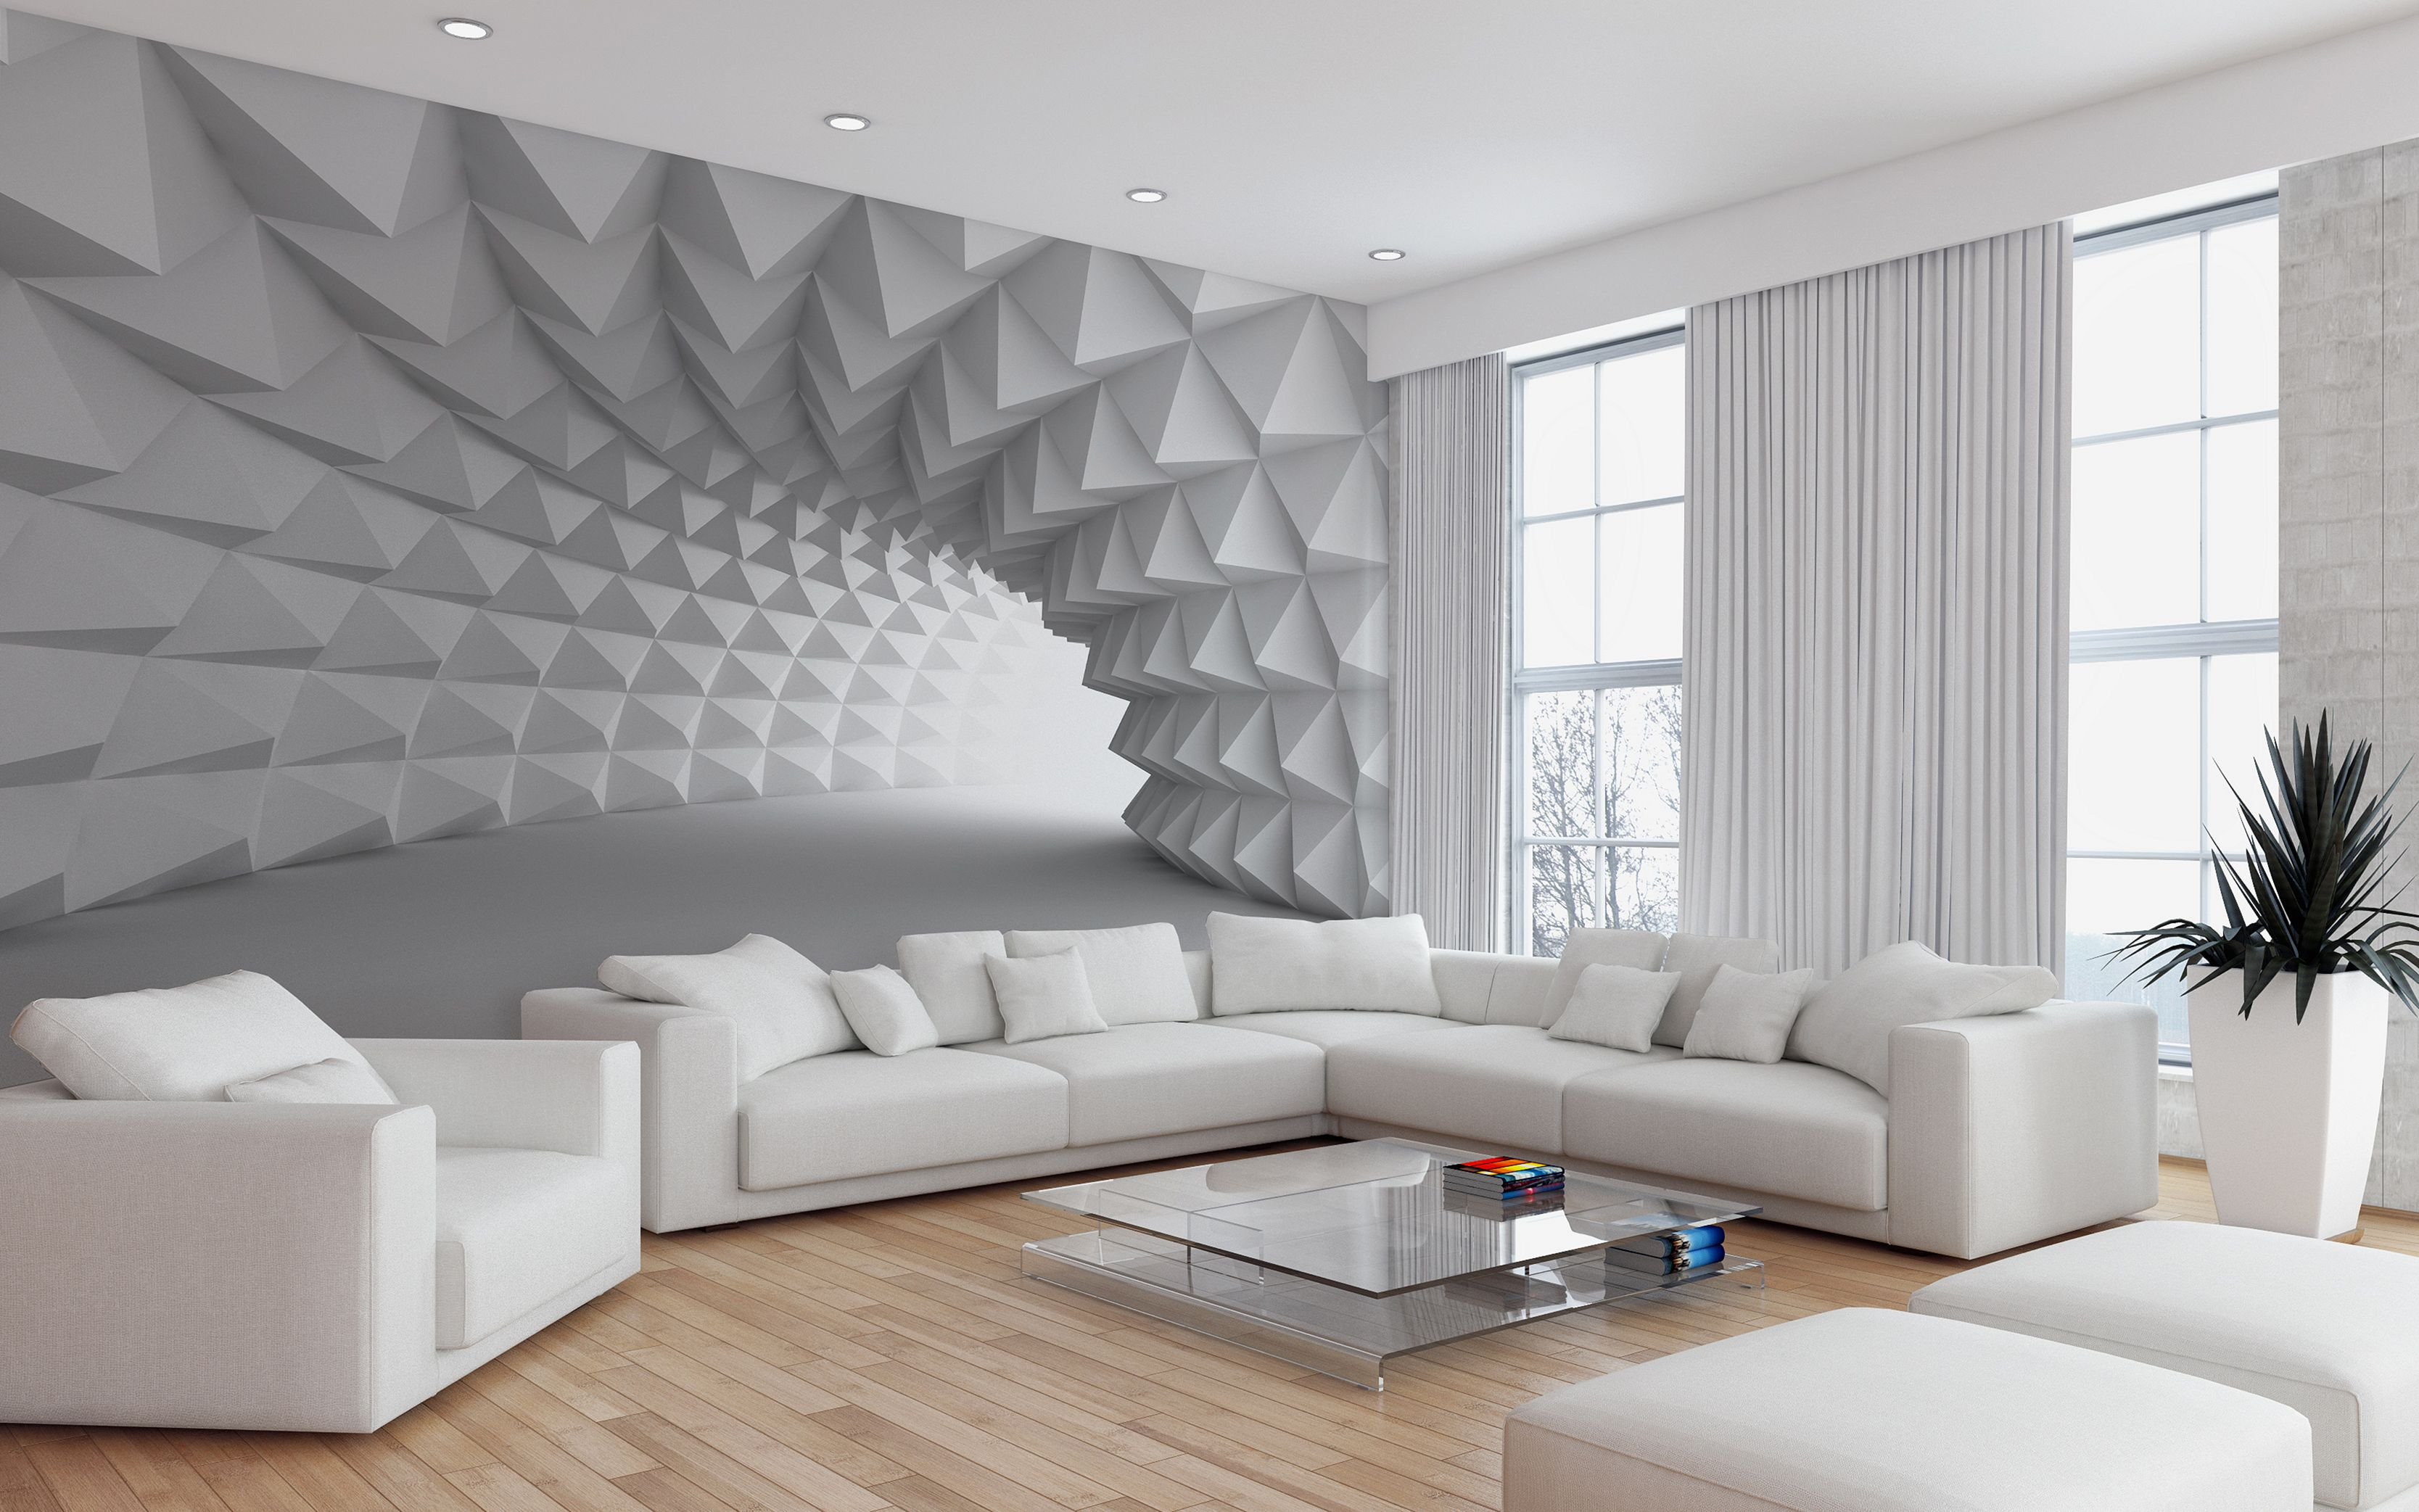 12 Gorgeous Living Room Design With 3D Wall Ideas To ...